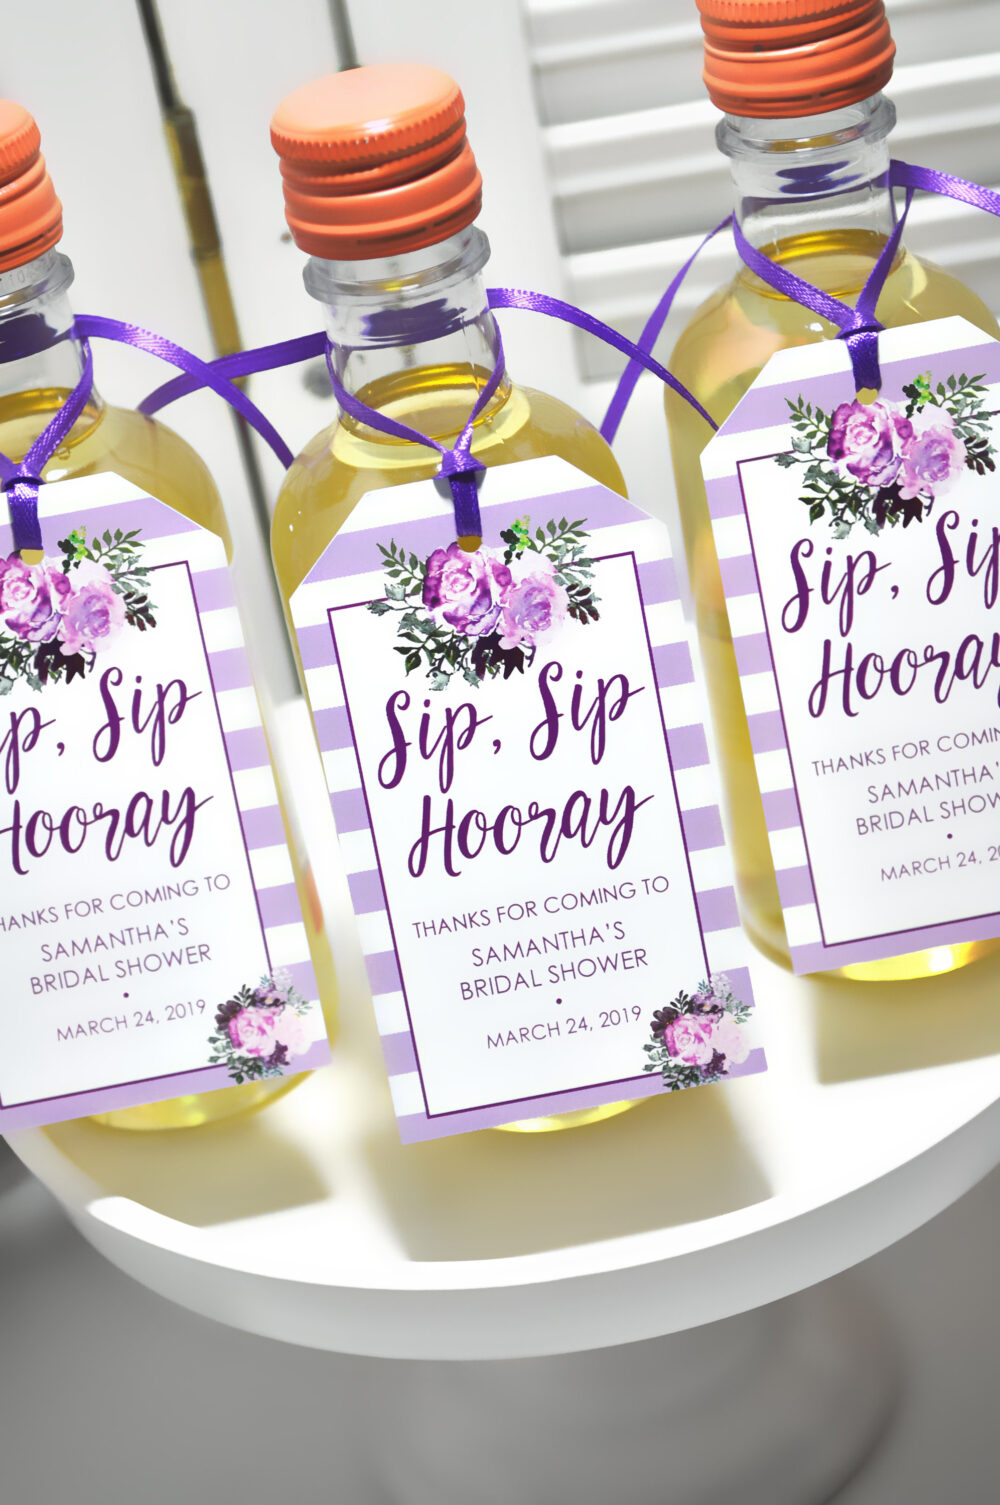 Bridal Shower Favor Tags For Mini Wine Bottles, Wedding Favors, Champagne Tags, Personalized Wedding, Purple Floral - Set Of 12